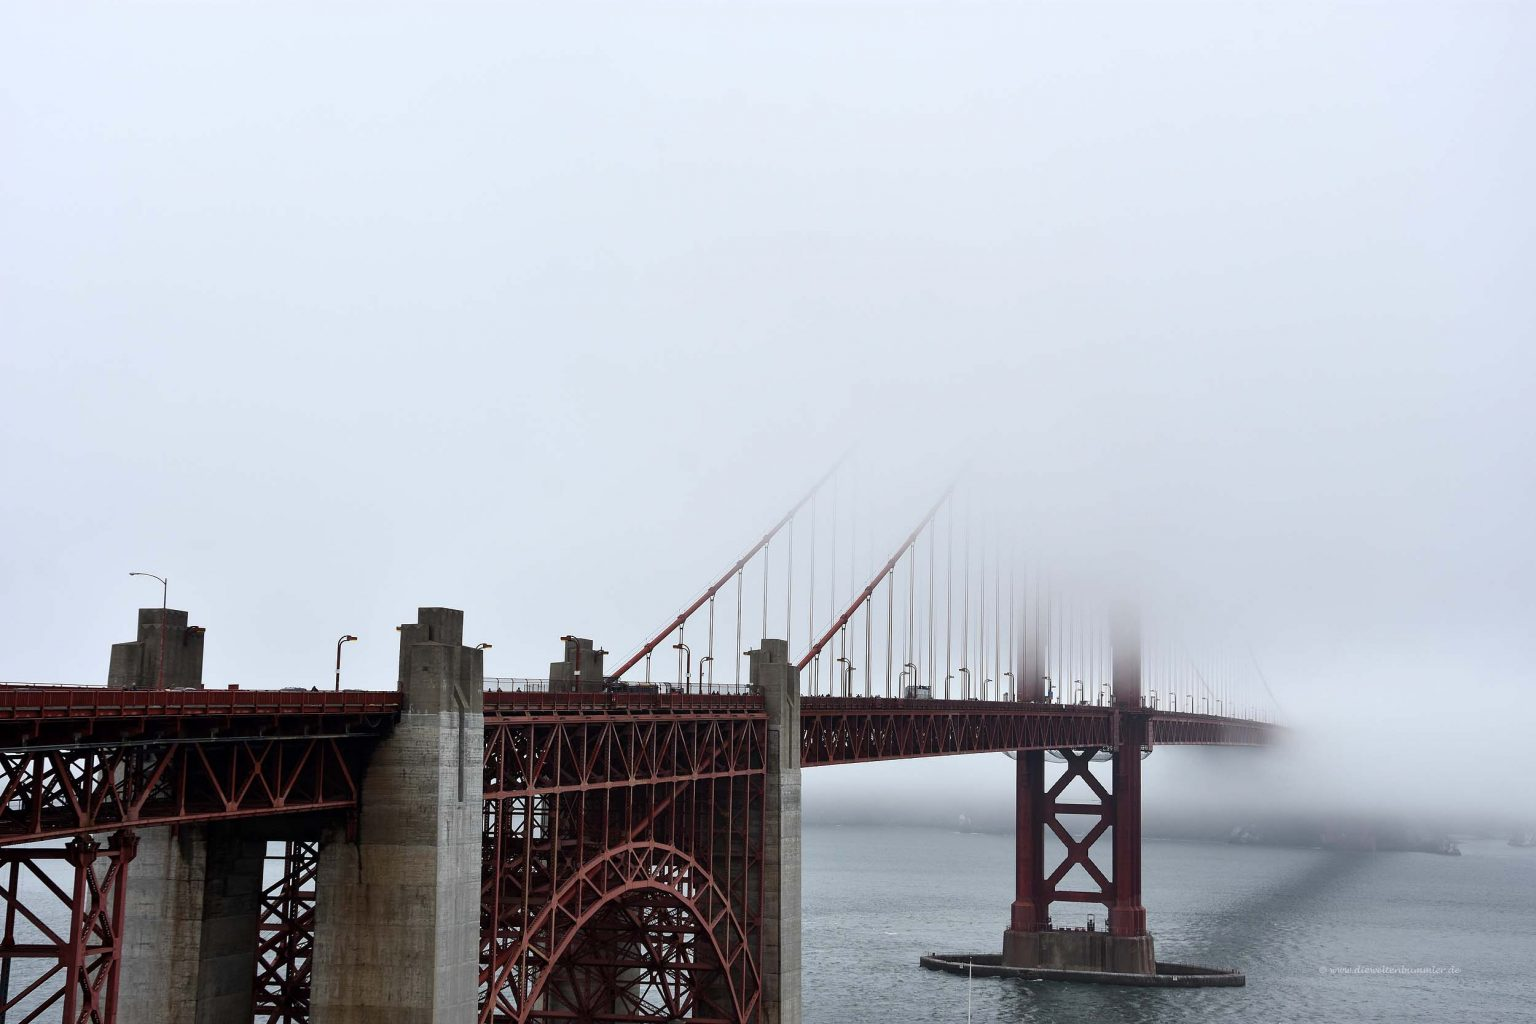 Vernebelte Golden Gate Bridge